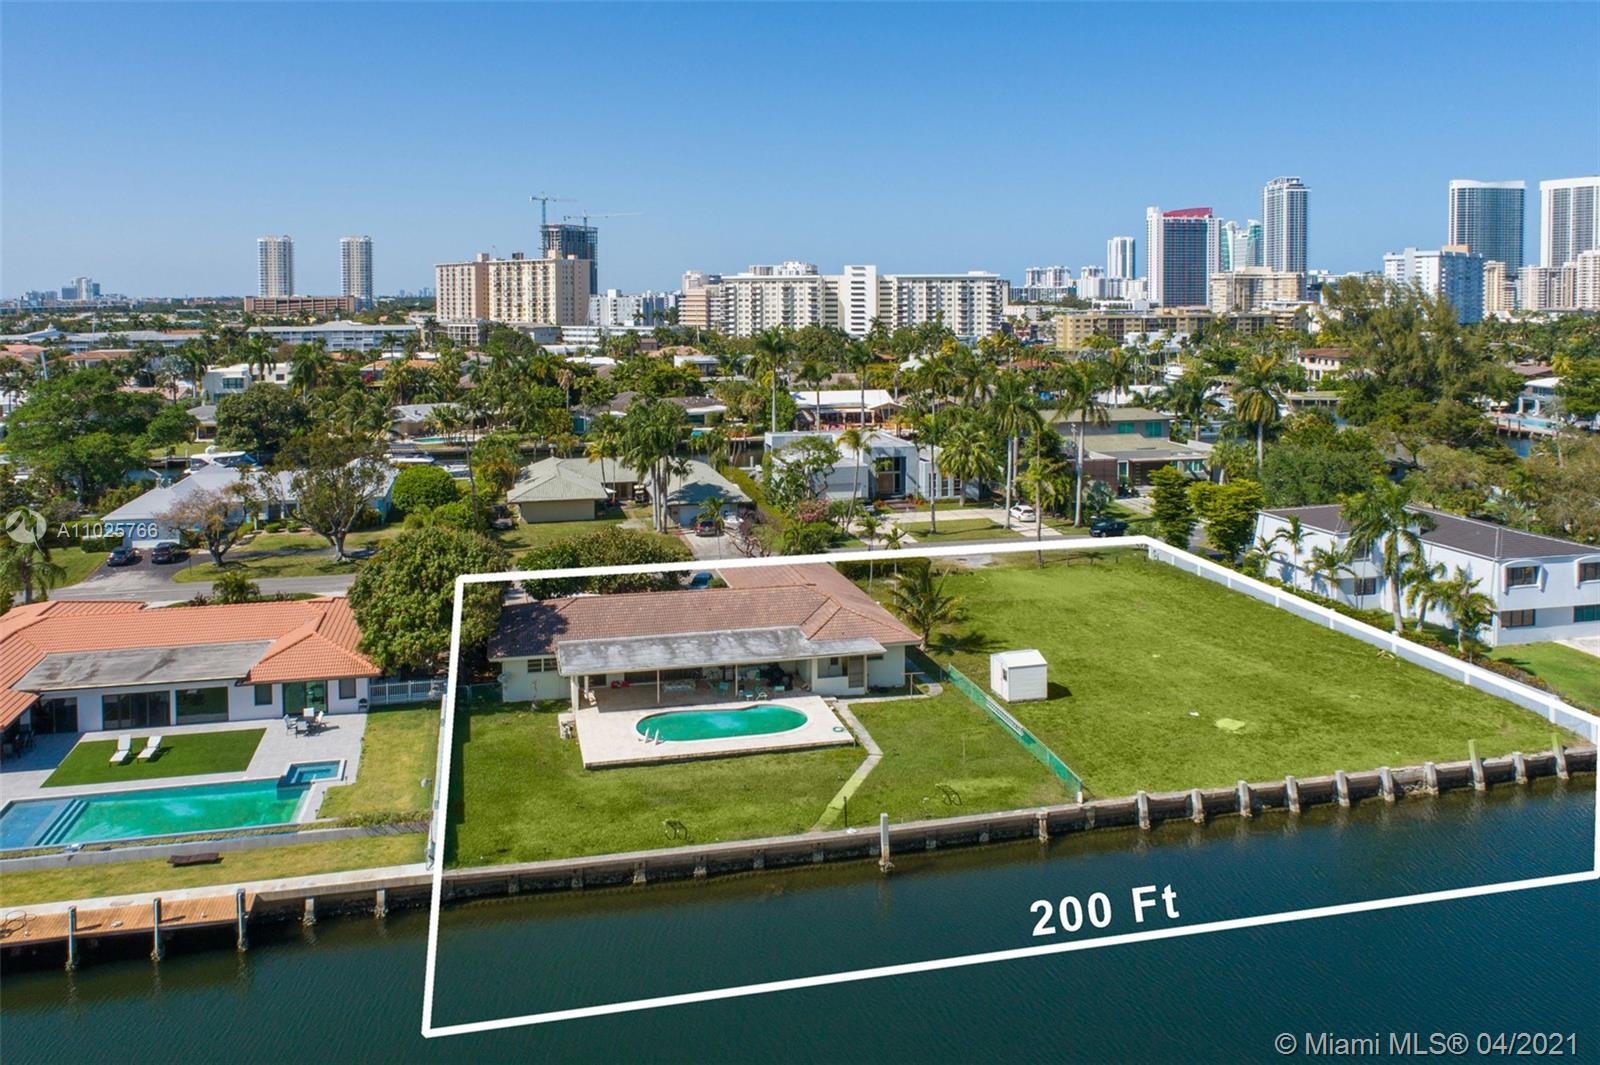 Impressive double lot with over 30,000 sq.ft. and 200 feet of waterfront on deep-water with no fixed bridge and ocean access. This lot has southern exposure with sunrises and sunsets, beautiful views not facing any condos and perfect for large vessels on its protected no wake wide canal. This property has a new 200' batter pile seawall and massive new dock and is a one-of-a-kind opportunity to build a huge new waterfront estate or build two large waterfront estates on this massive lot. The property is situated on one of the best streets in the community, a quiet cul-de-sac street and canal with no thru traffic. Located in the private gated waterfront community of Golden Isles, centrally located between Miami and Ft. Lauderdale and close to The Shops of Bal Harbour and the Aventura Mall.